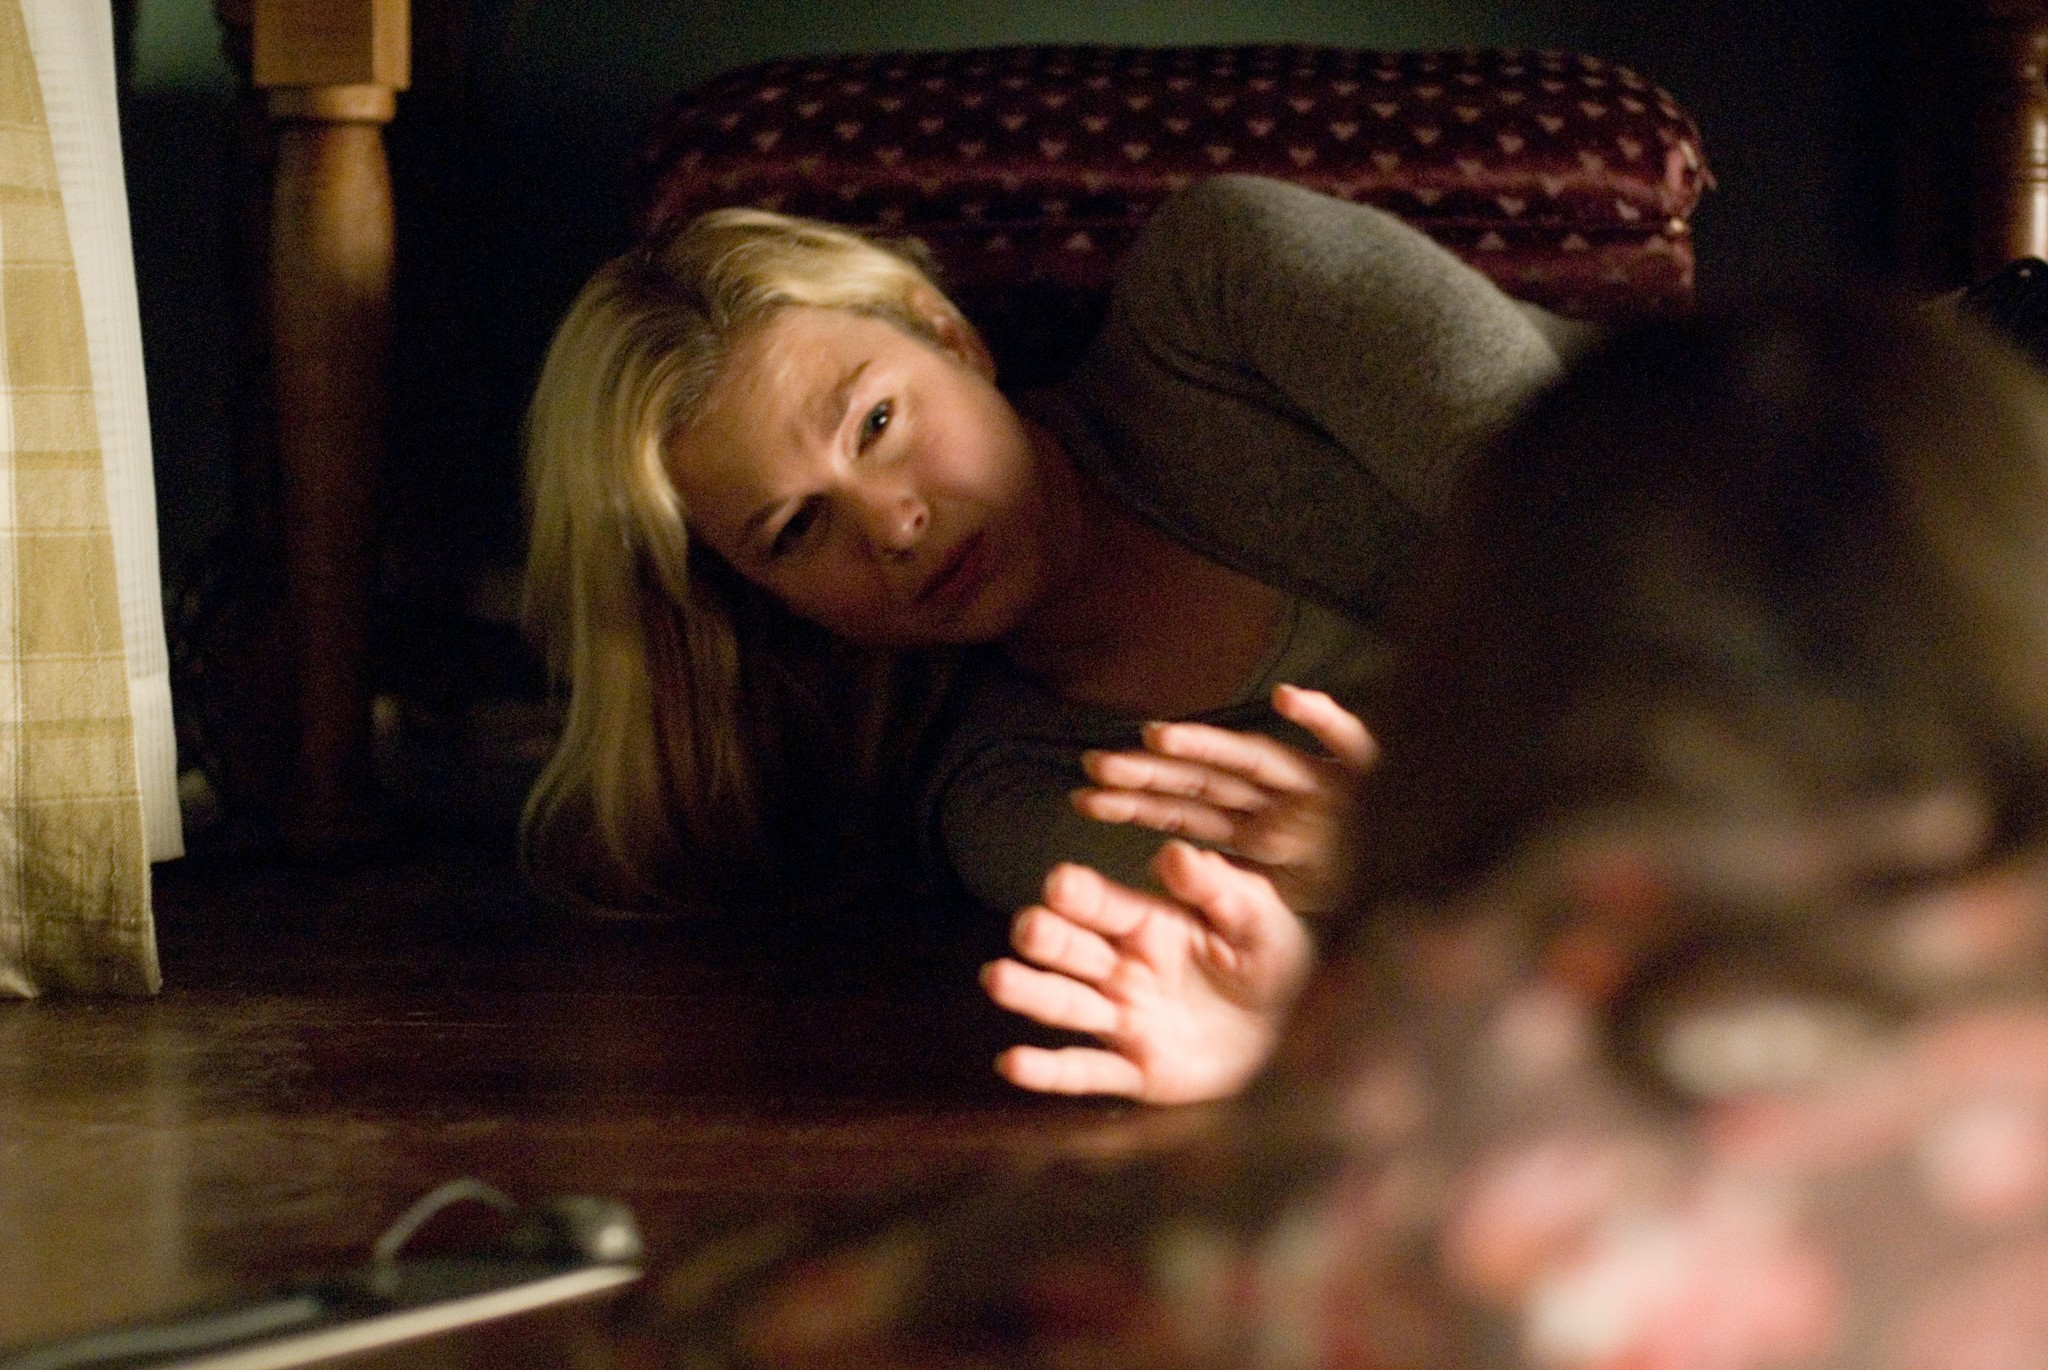 Renée Zellweger in Case 39 (2009)